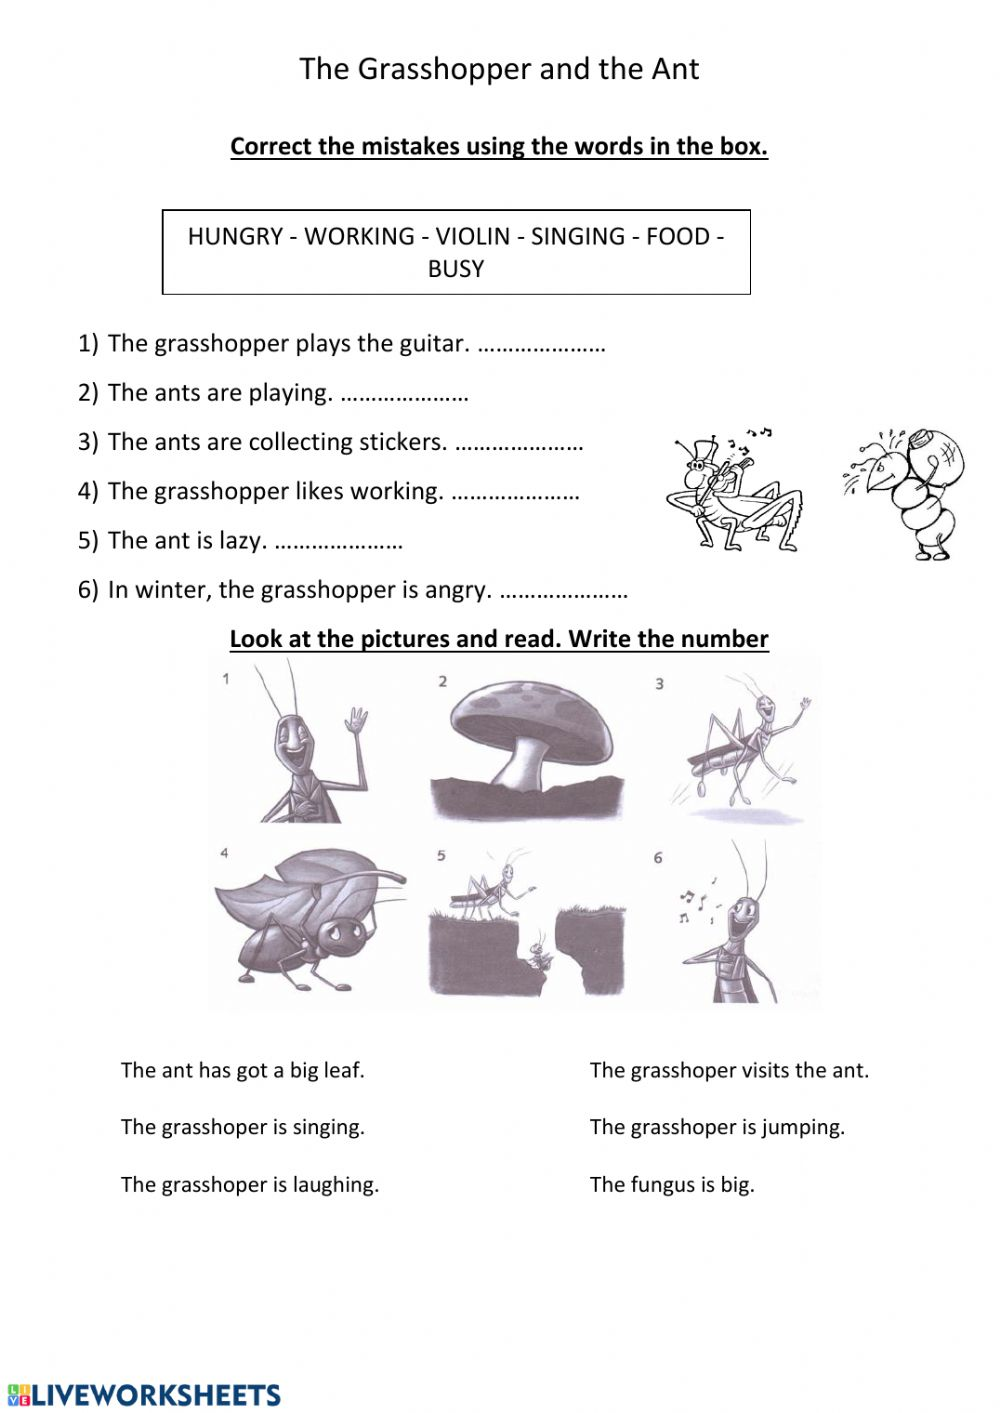 medium resolution of The grasshopper and the ant worksheet